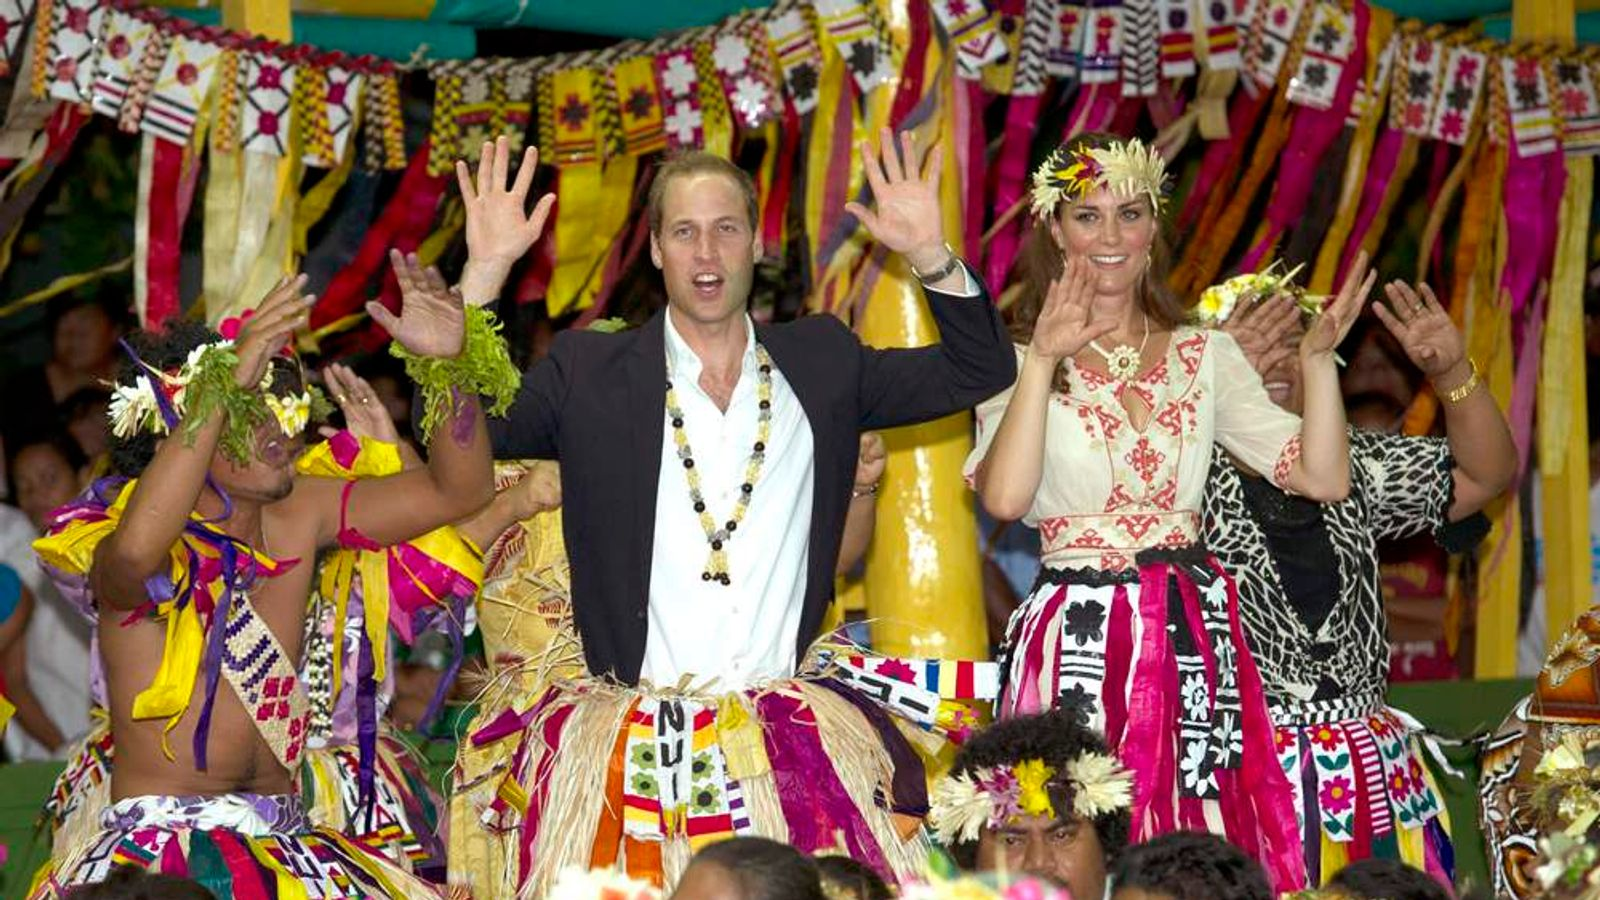 Prince William and wife Kate dance in Tuvalu in South Pacific